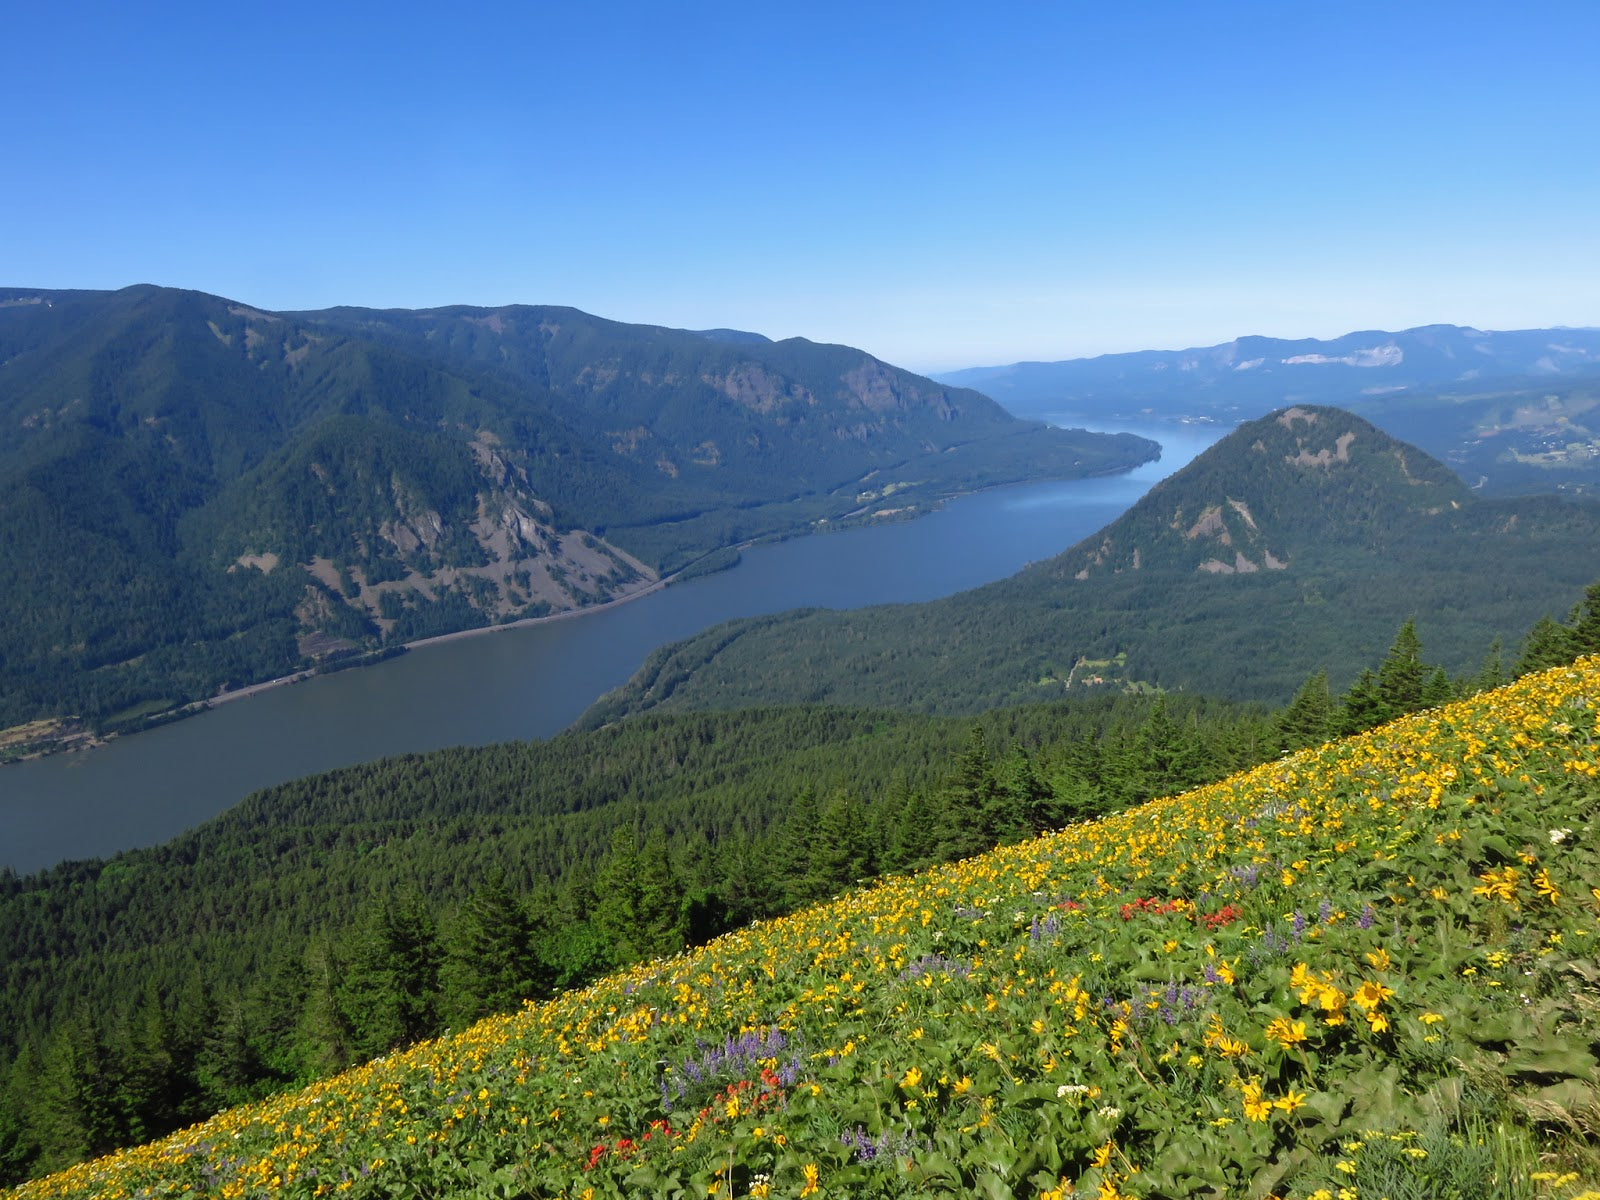 Dog Mountain at Columbia River Gorge in Washington